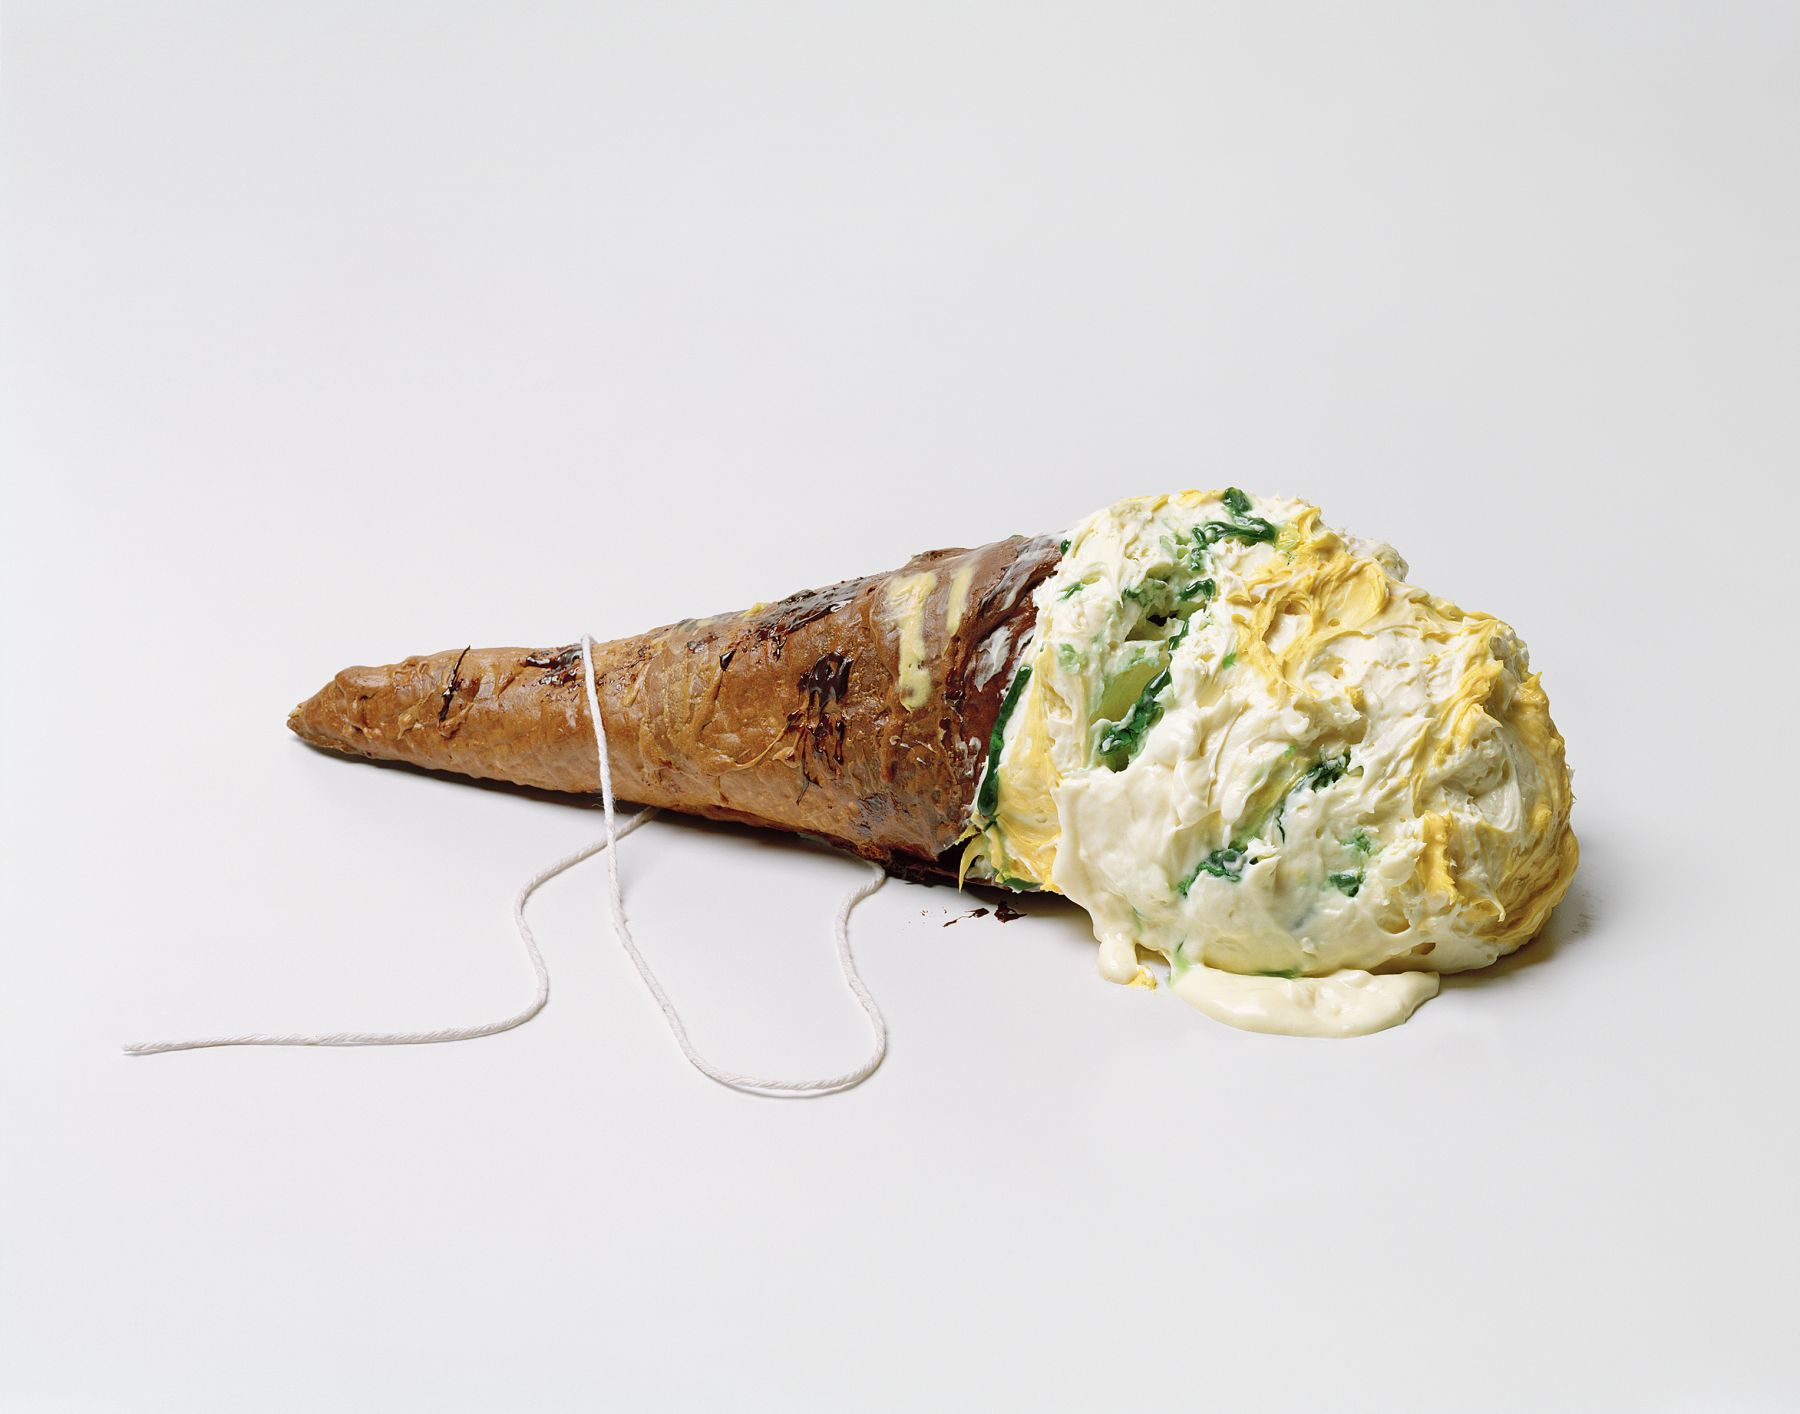 Photograph by Sharon Core. Ice cream cone lying on its side arranged to look like similar sculpture by Claes Oldenburg.